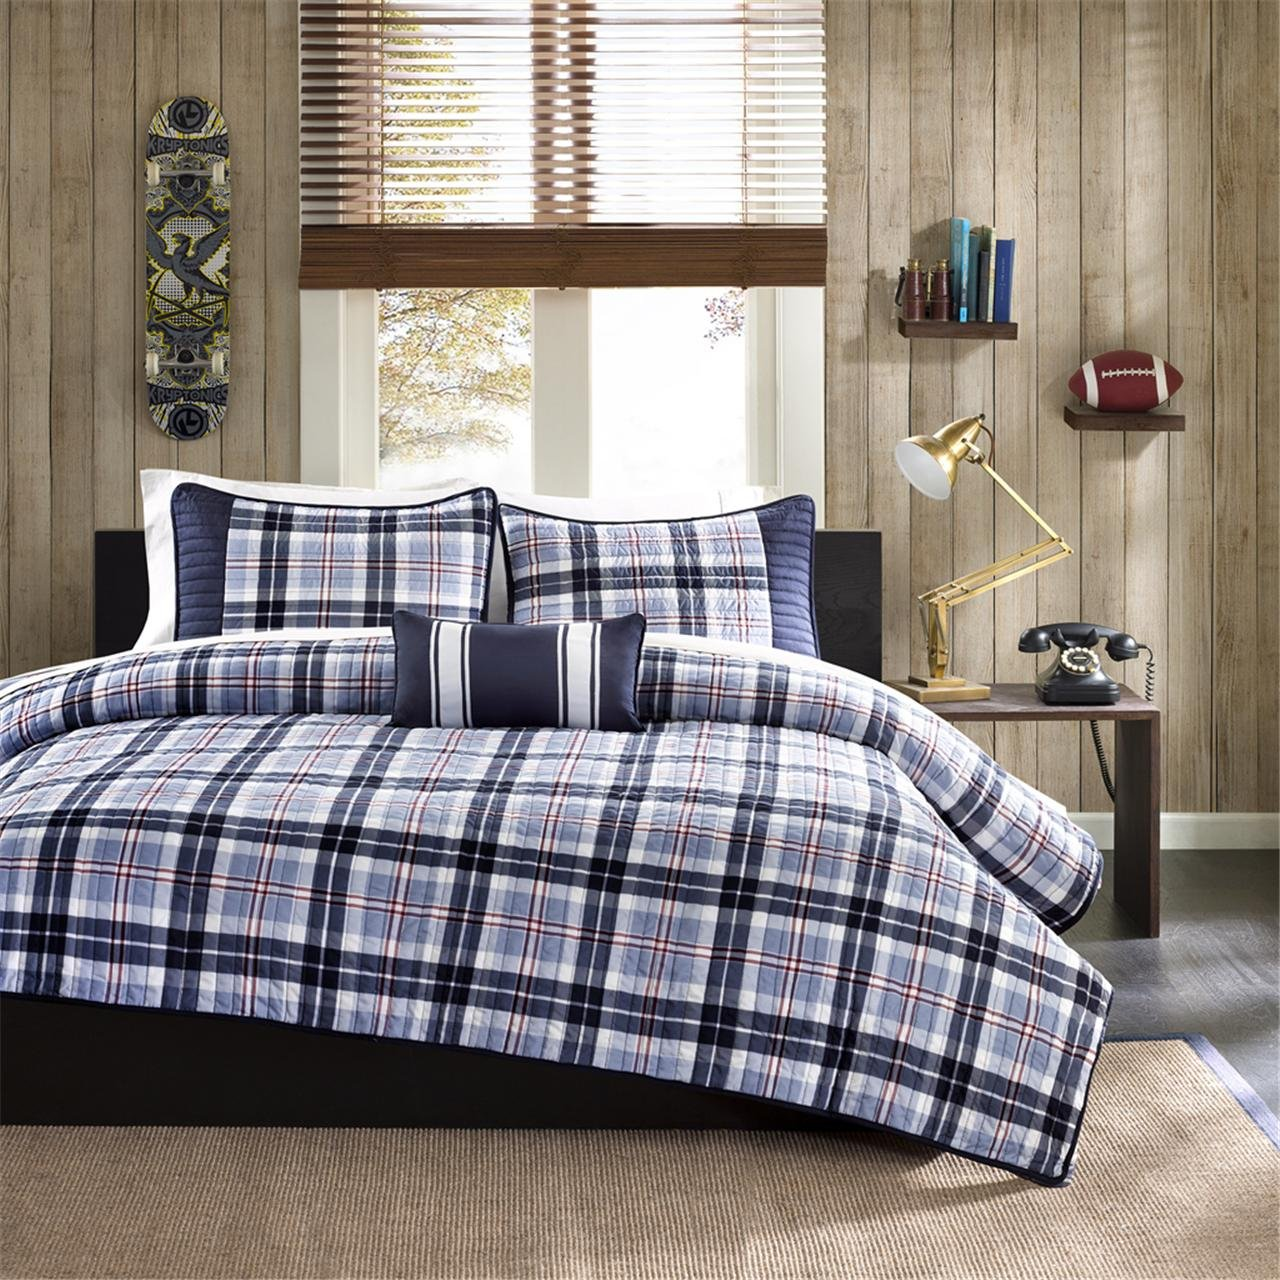 Mi-Zone Elliot Twin/Twin XL Size Teen Boys Quilt Bedding Set - Navy, Plaid - 3 Piece Boys Bedding Quilt Coverlets - Peach Skin Fabric Bed Quilts Quilted Coverlet by Mi-Zone